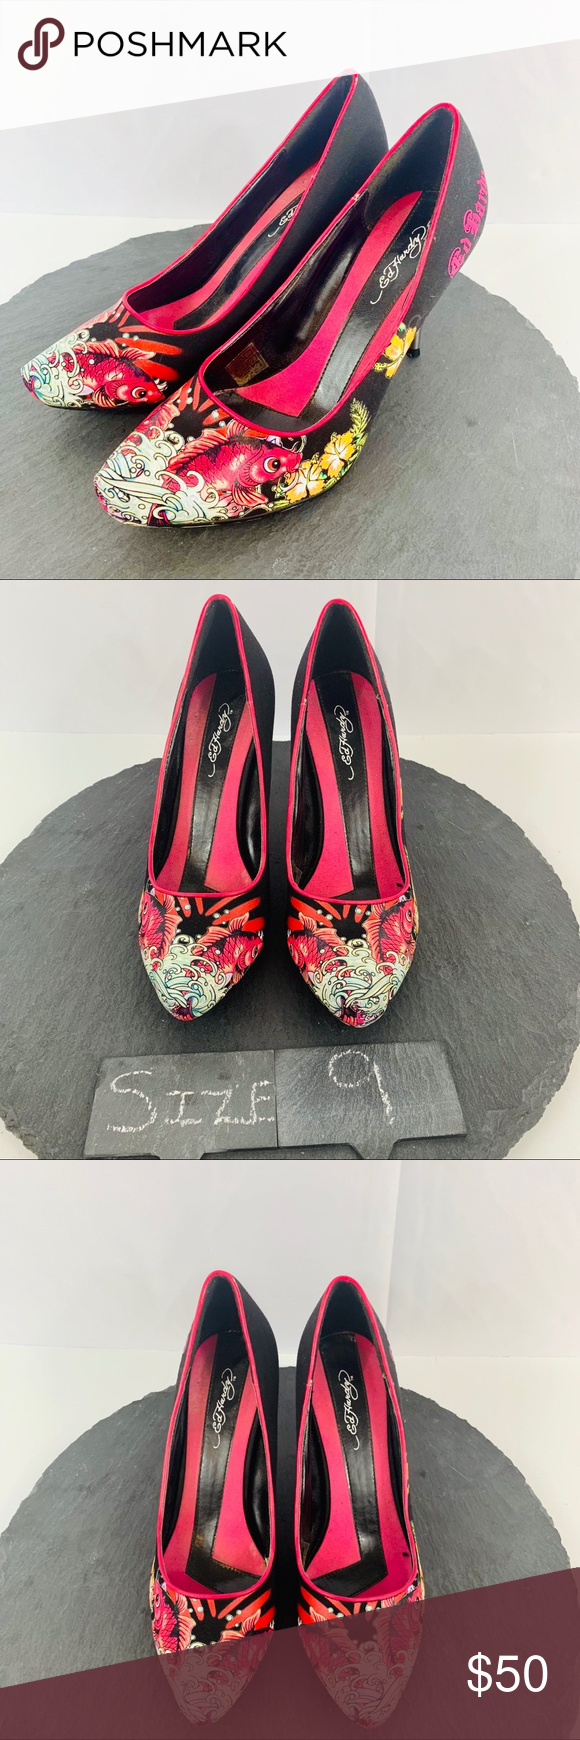 cda5cba252 Ed Hardy koi fish heels size 9 The product you are purchasing is a pair of  Vintage Ed Hardy heels in a women s size 9. These shoes are in good  condition w  ...